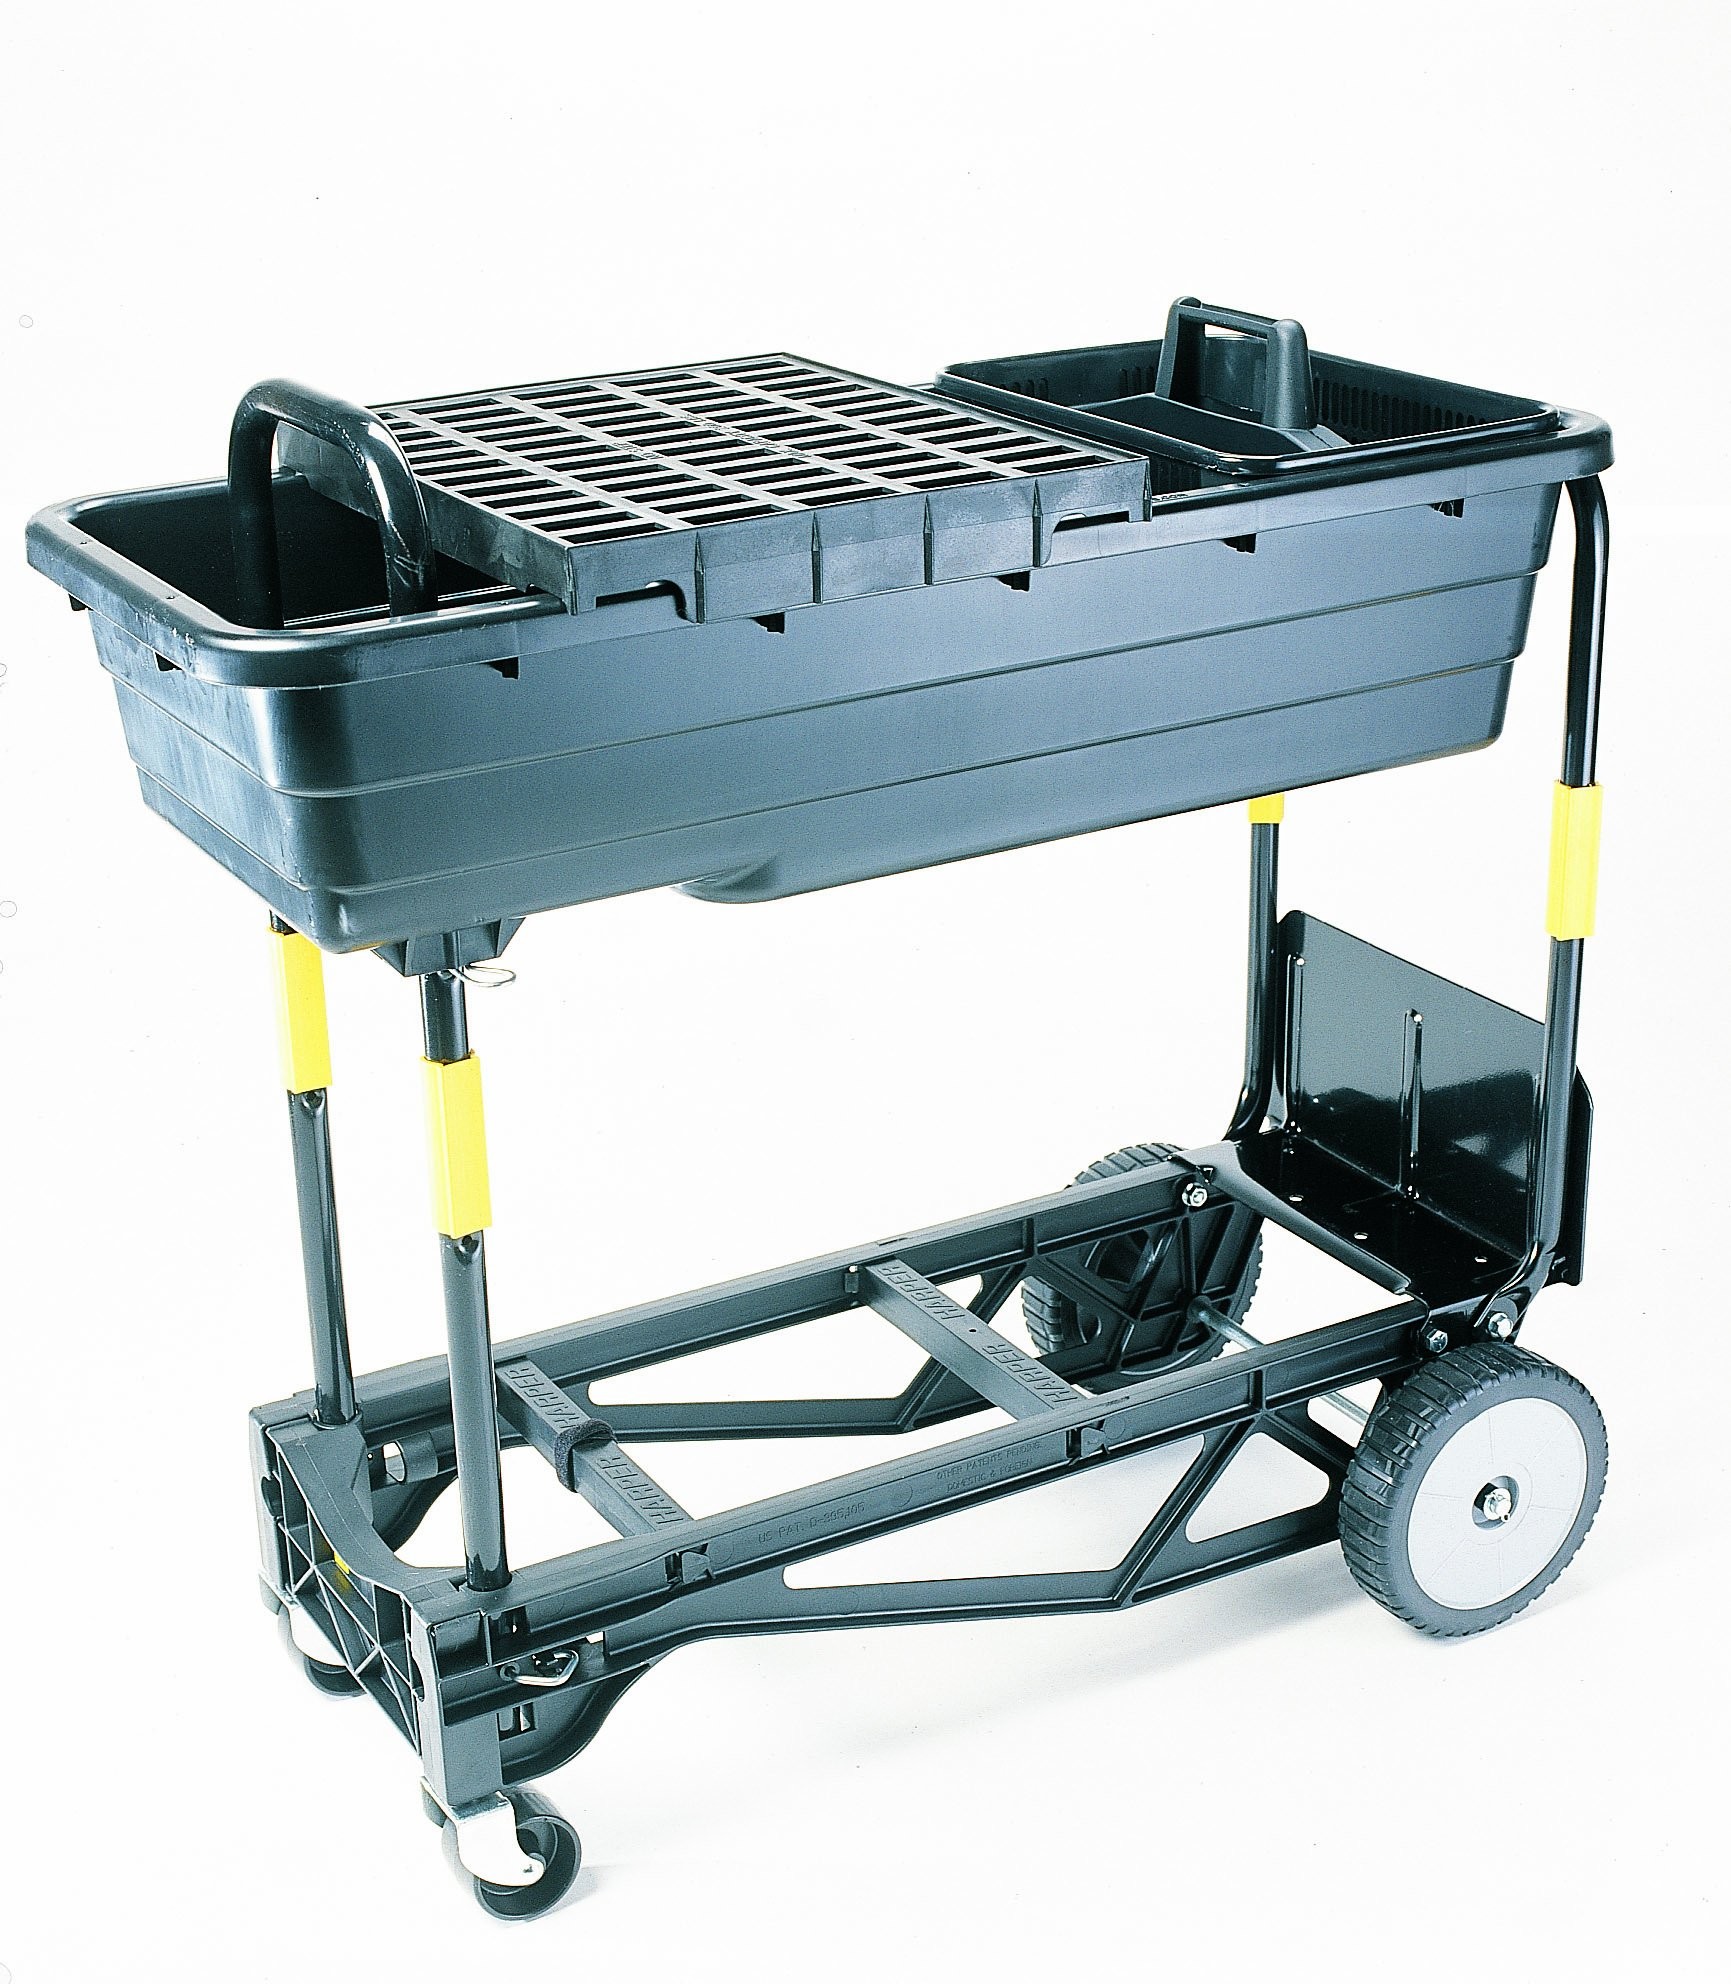 Harper Trucks All-In-One Home and Garden Cart by Harper Trucks